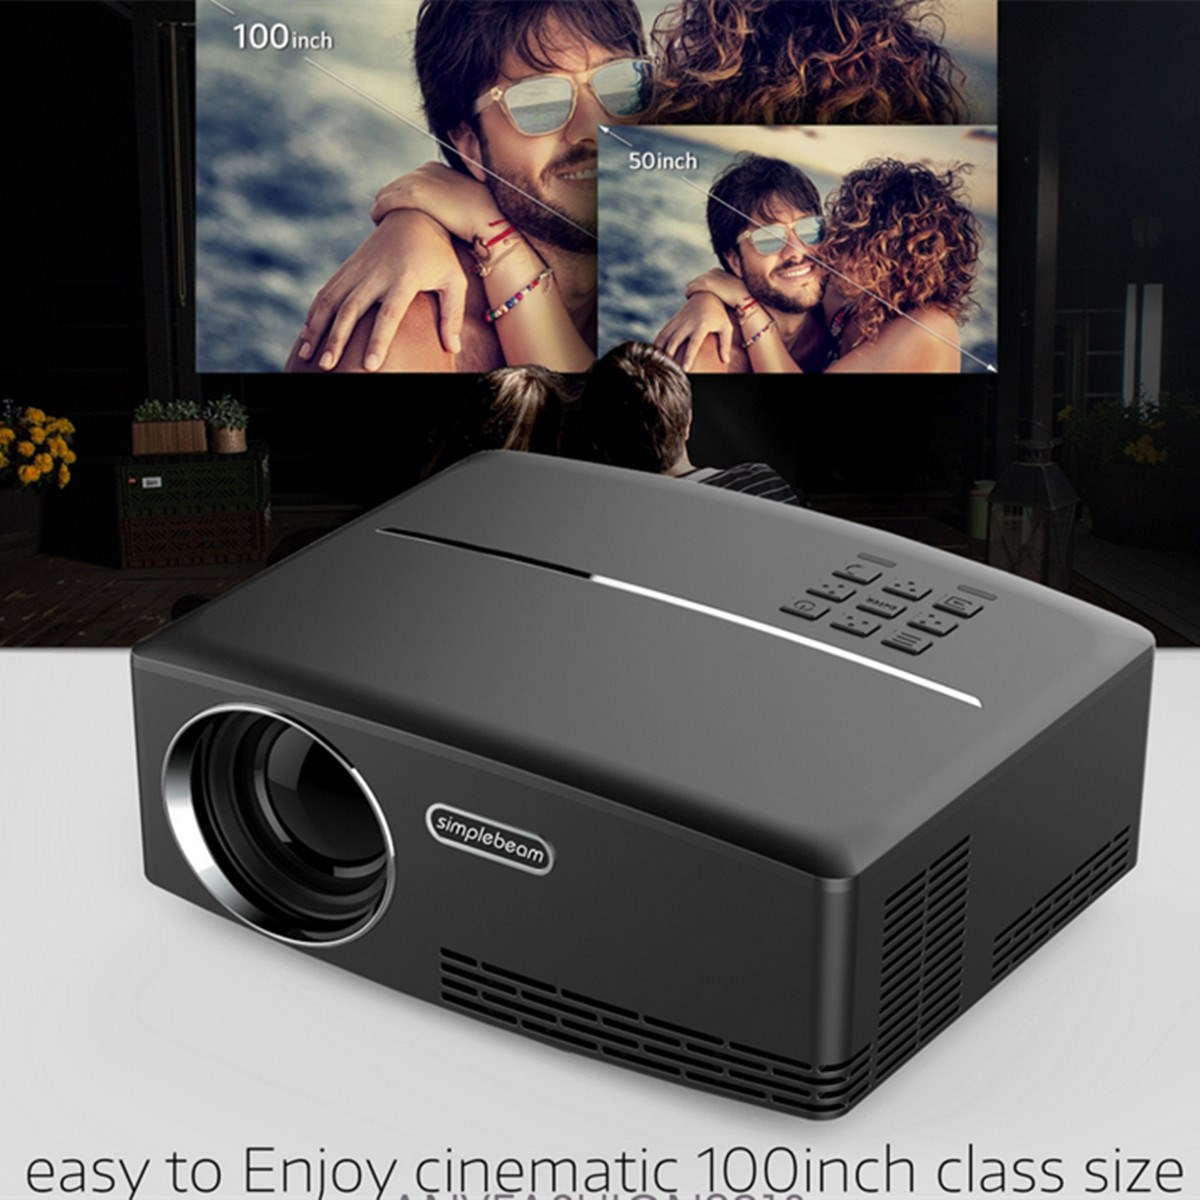 1800 Lumens Support 1080P GP80 LED Video Projector Home Projector for Home Cinema Theater TV Laptop Movie Games US Plug crenova xpe460 led video projector 1080p 1200 lumens office projector with hdmi for home cinema theater tv laptop sd card